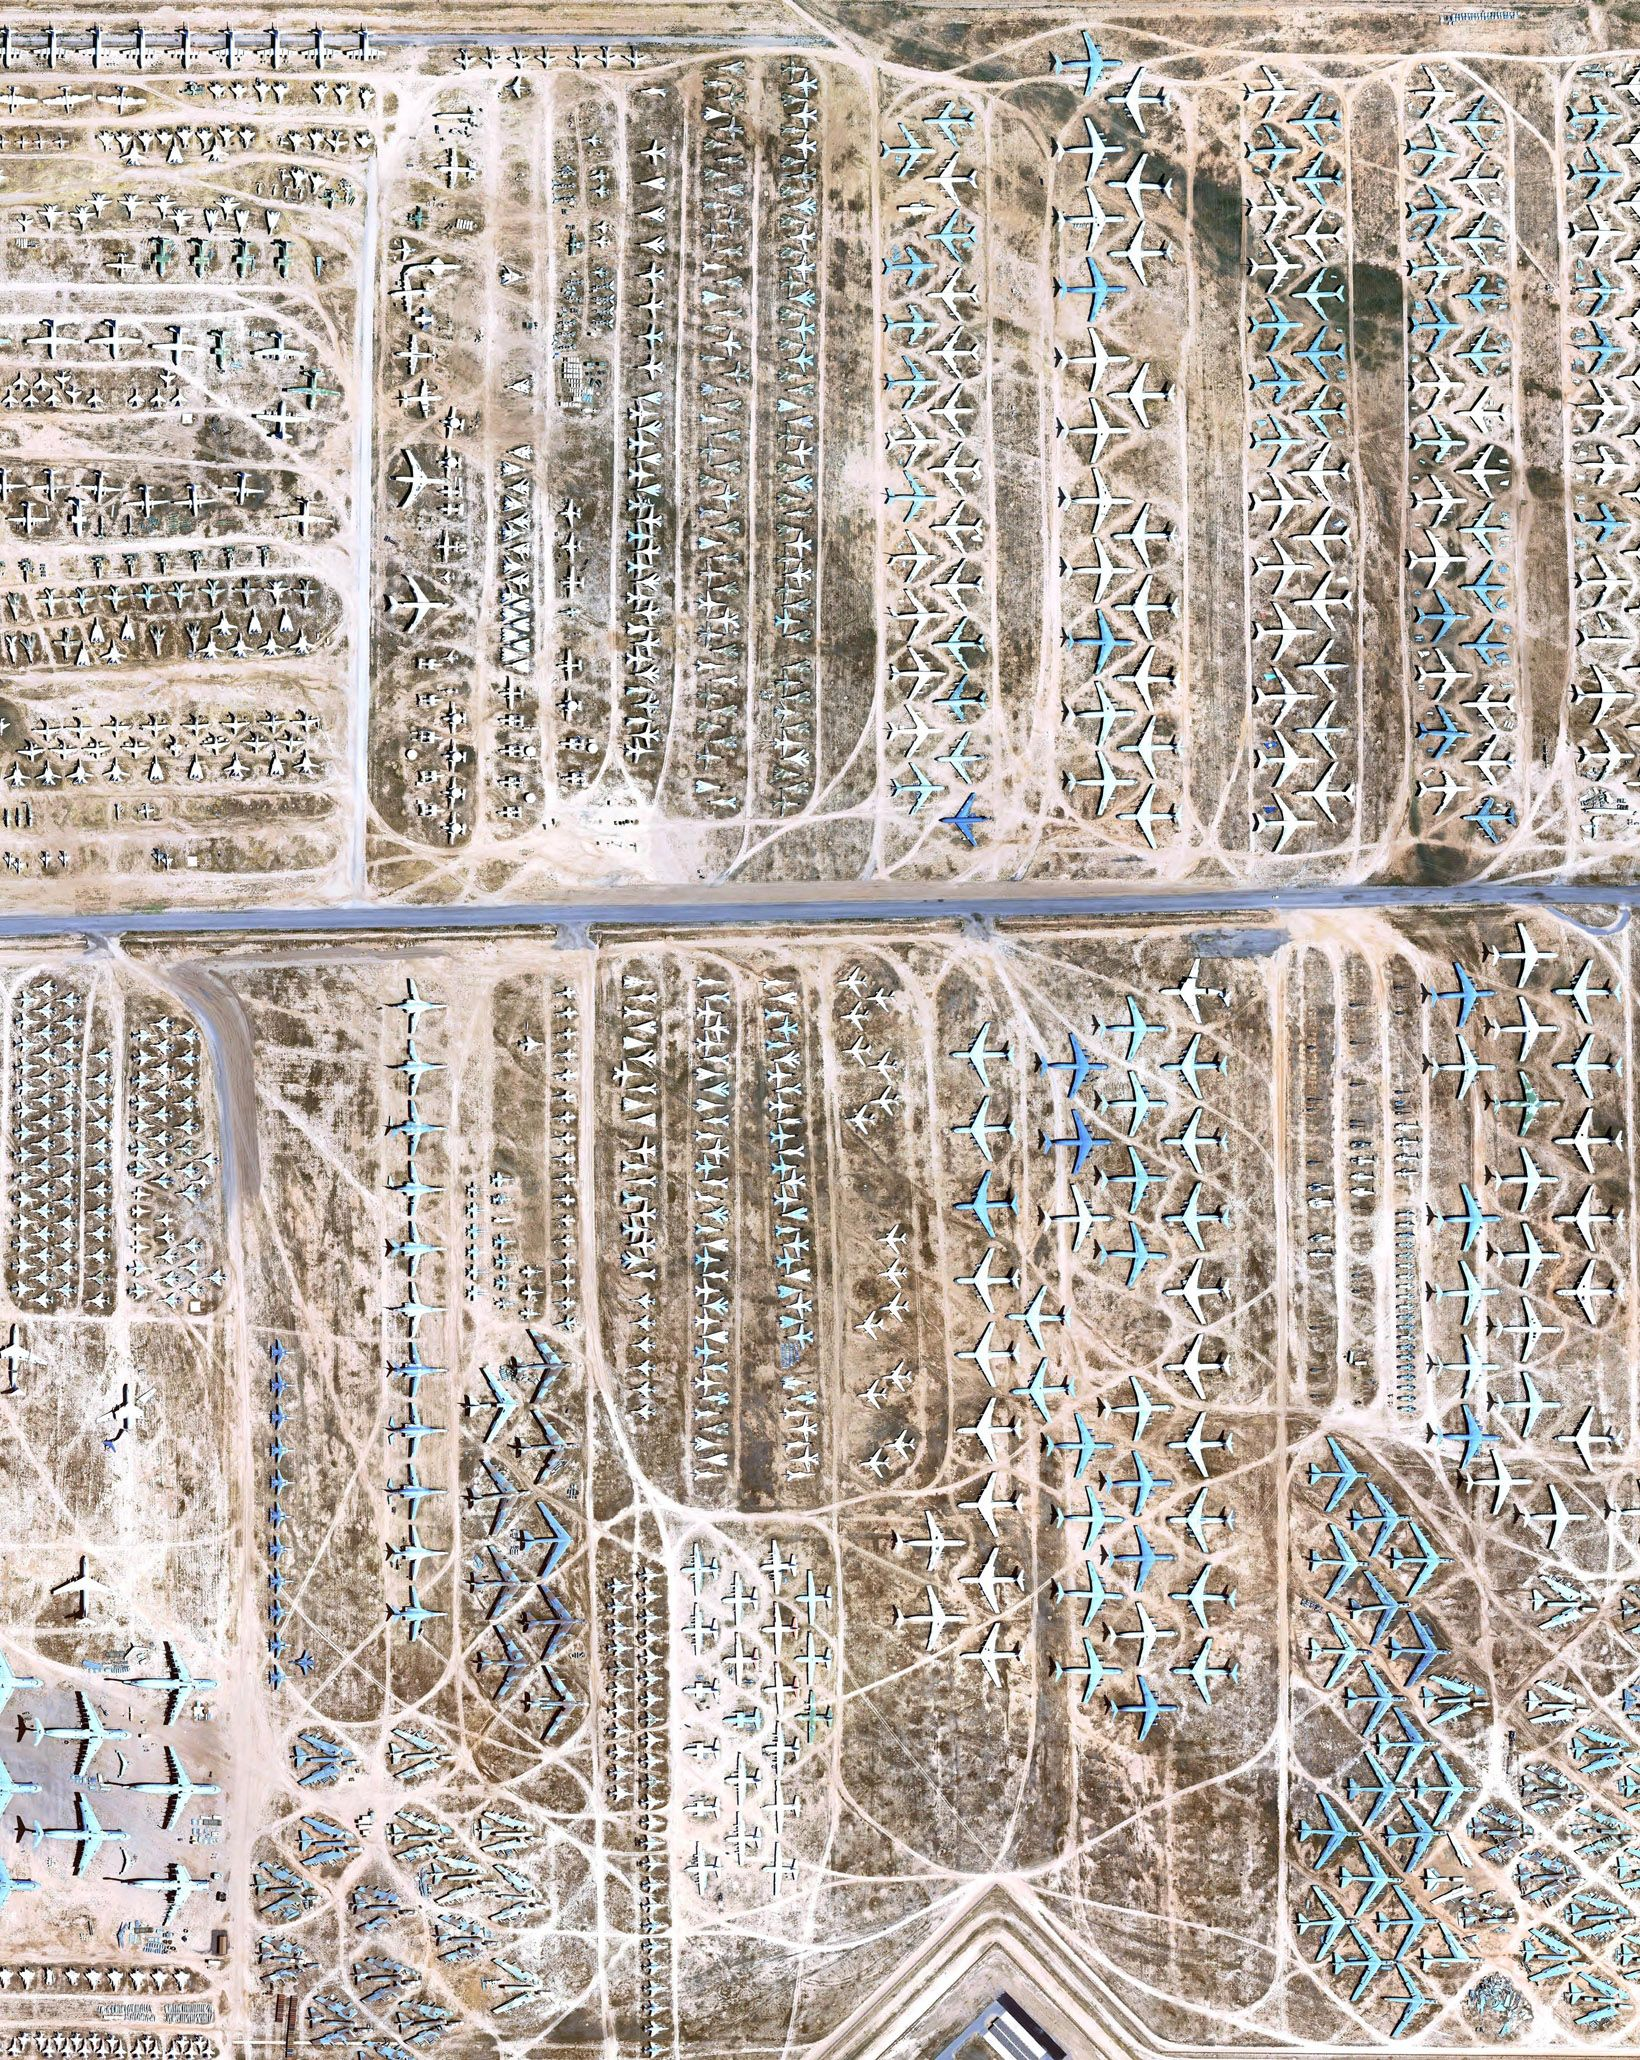 Google Earth S View Of The Boneyard Where Planes Go To Die